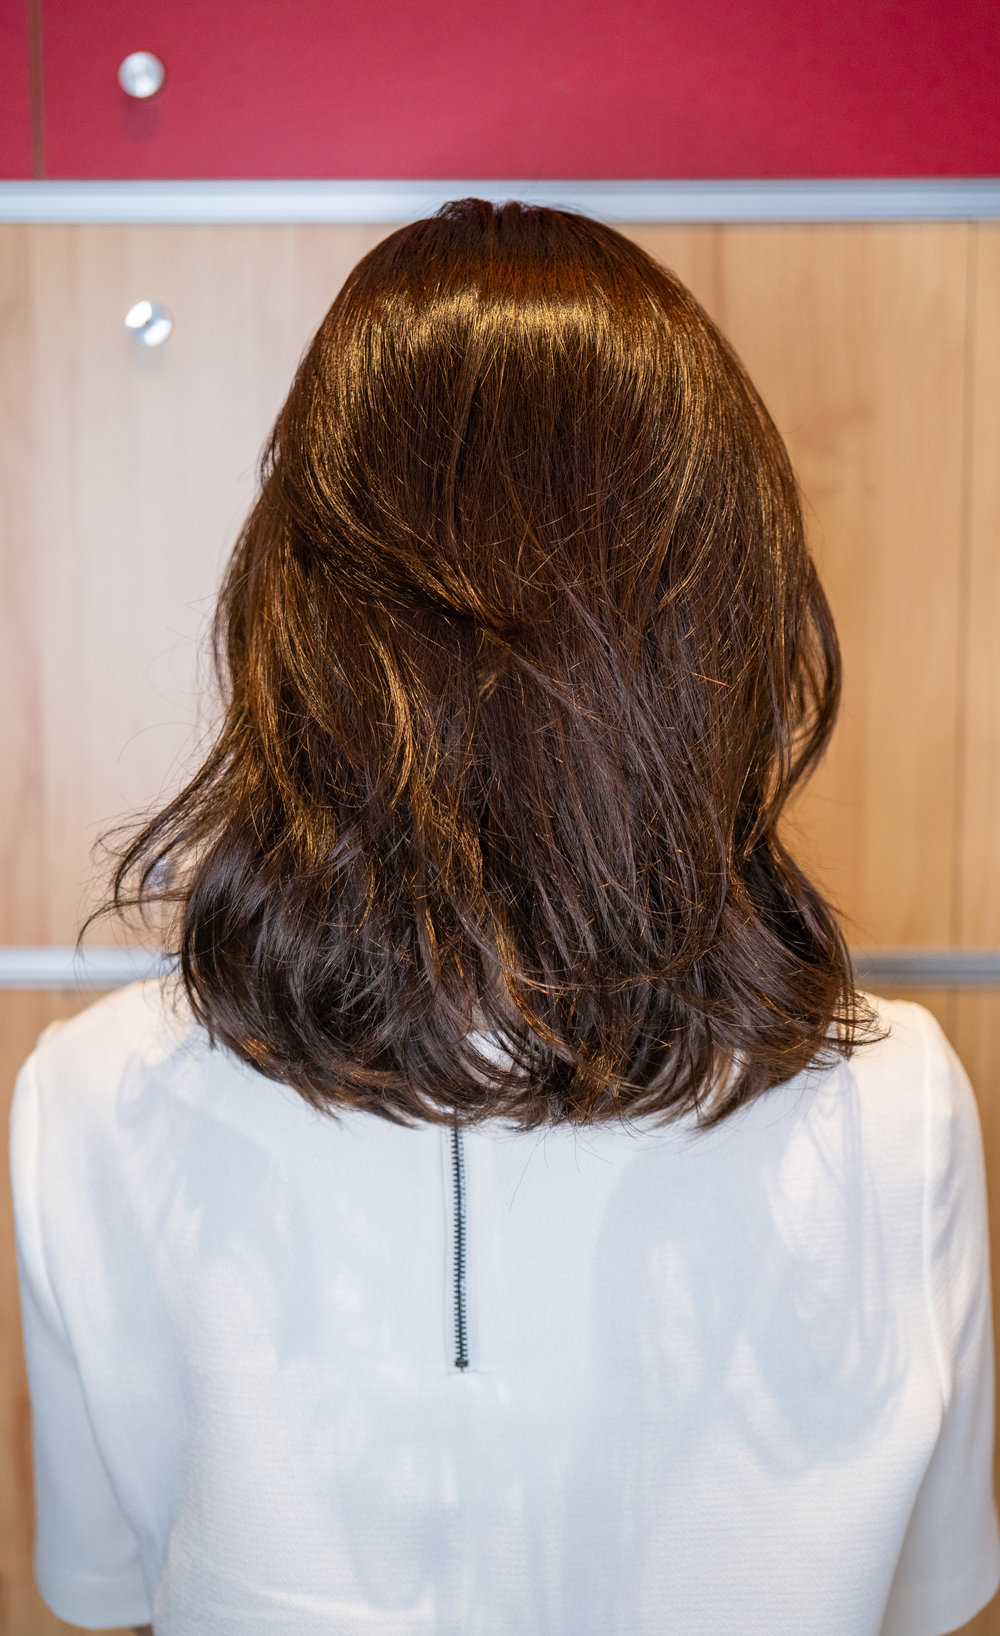 Shiny and smooth permed hair by Korean hairstylist Matthew Kim at DuSol Beauty Novena